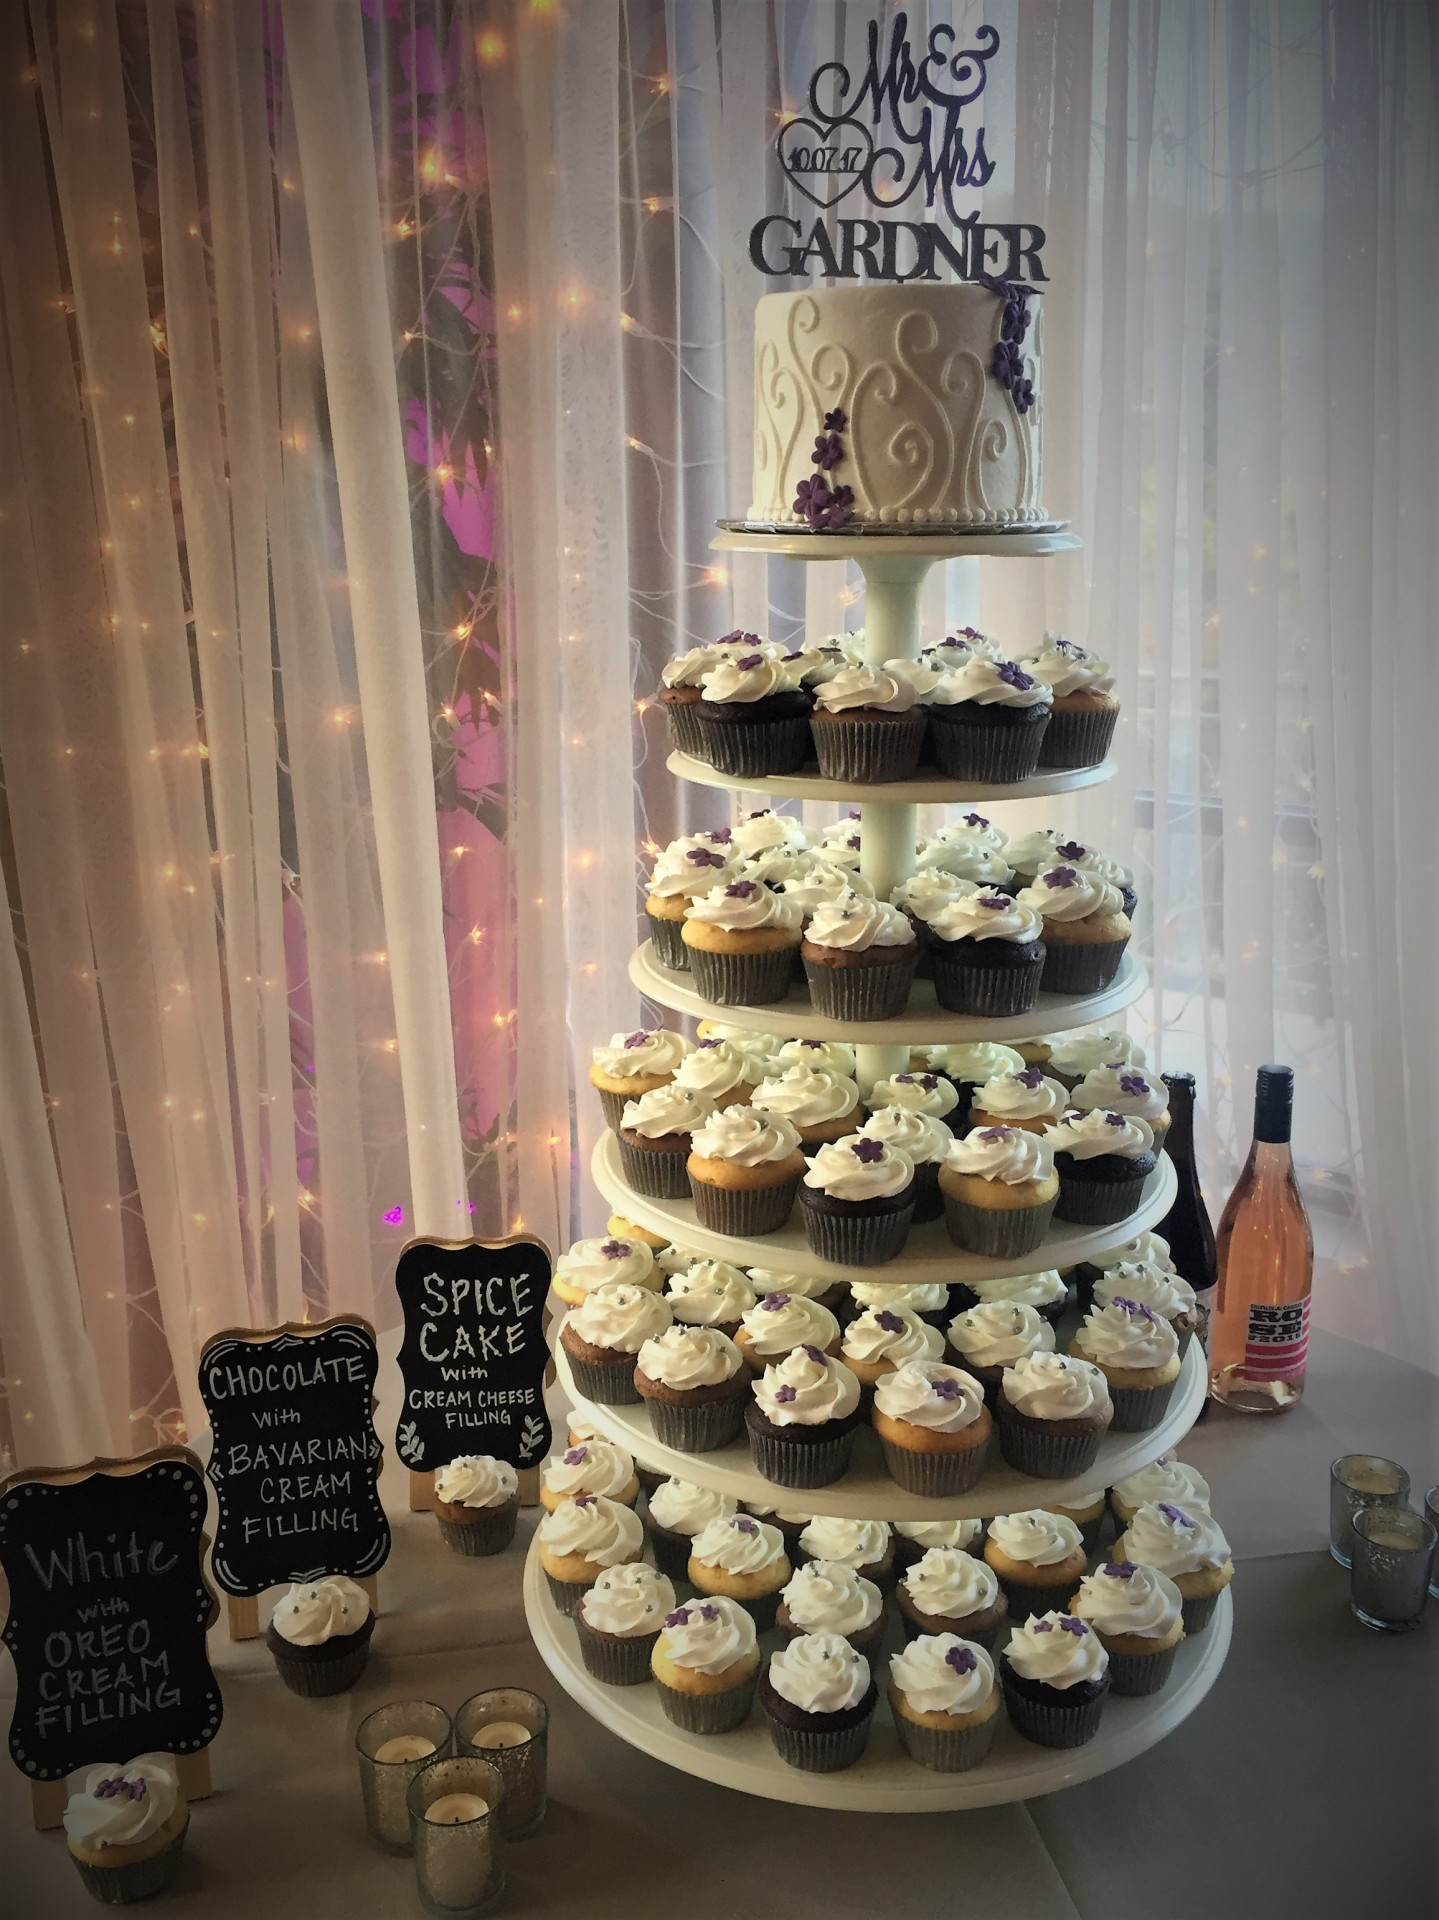 Gray and purple cupcake tower